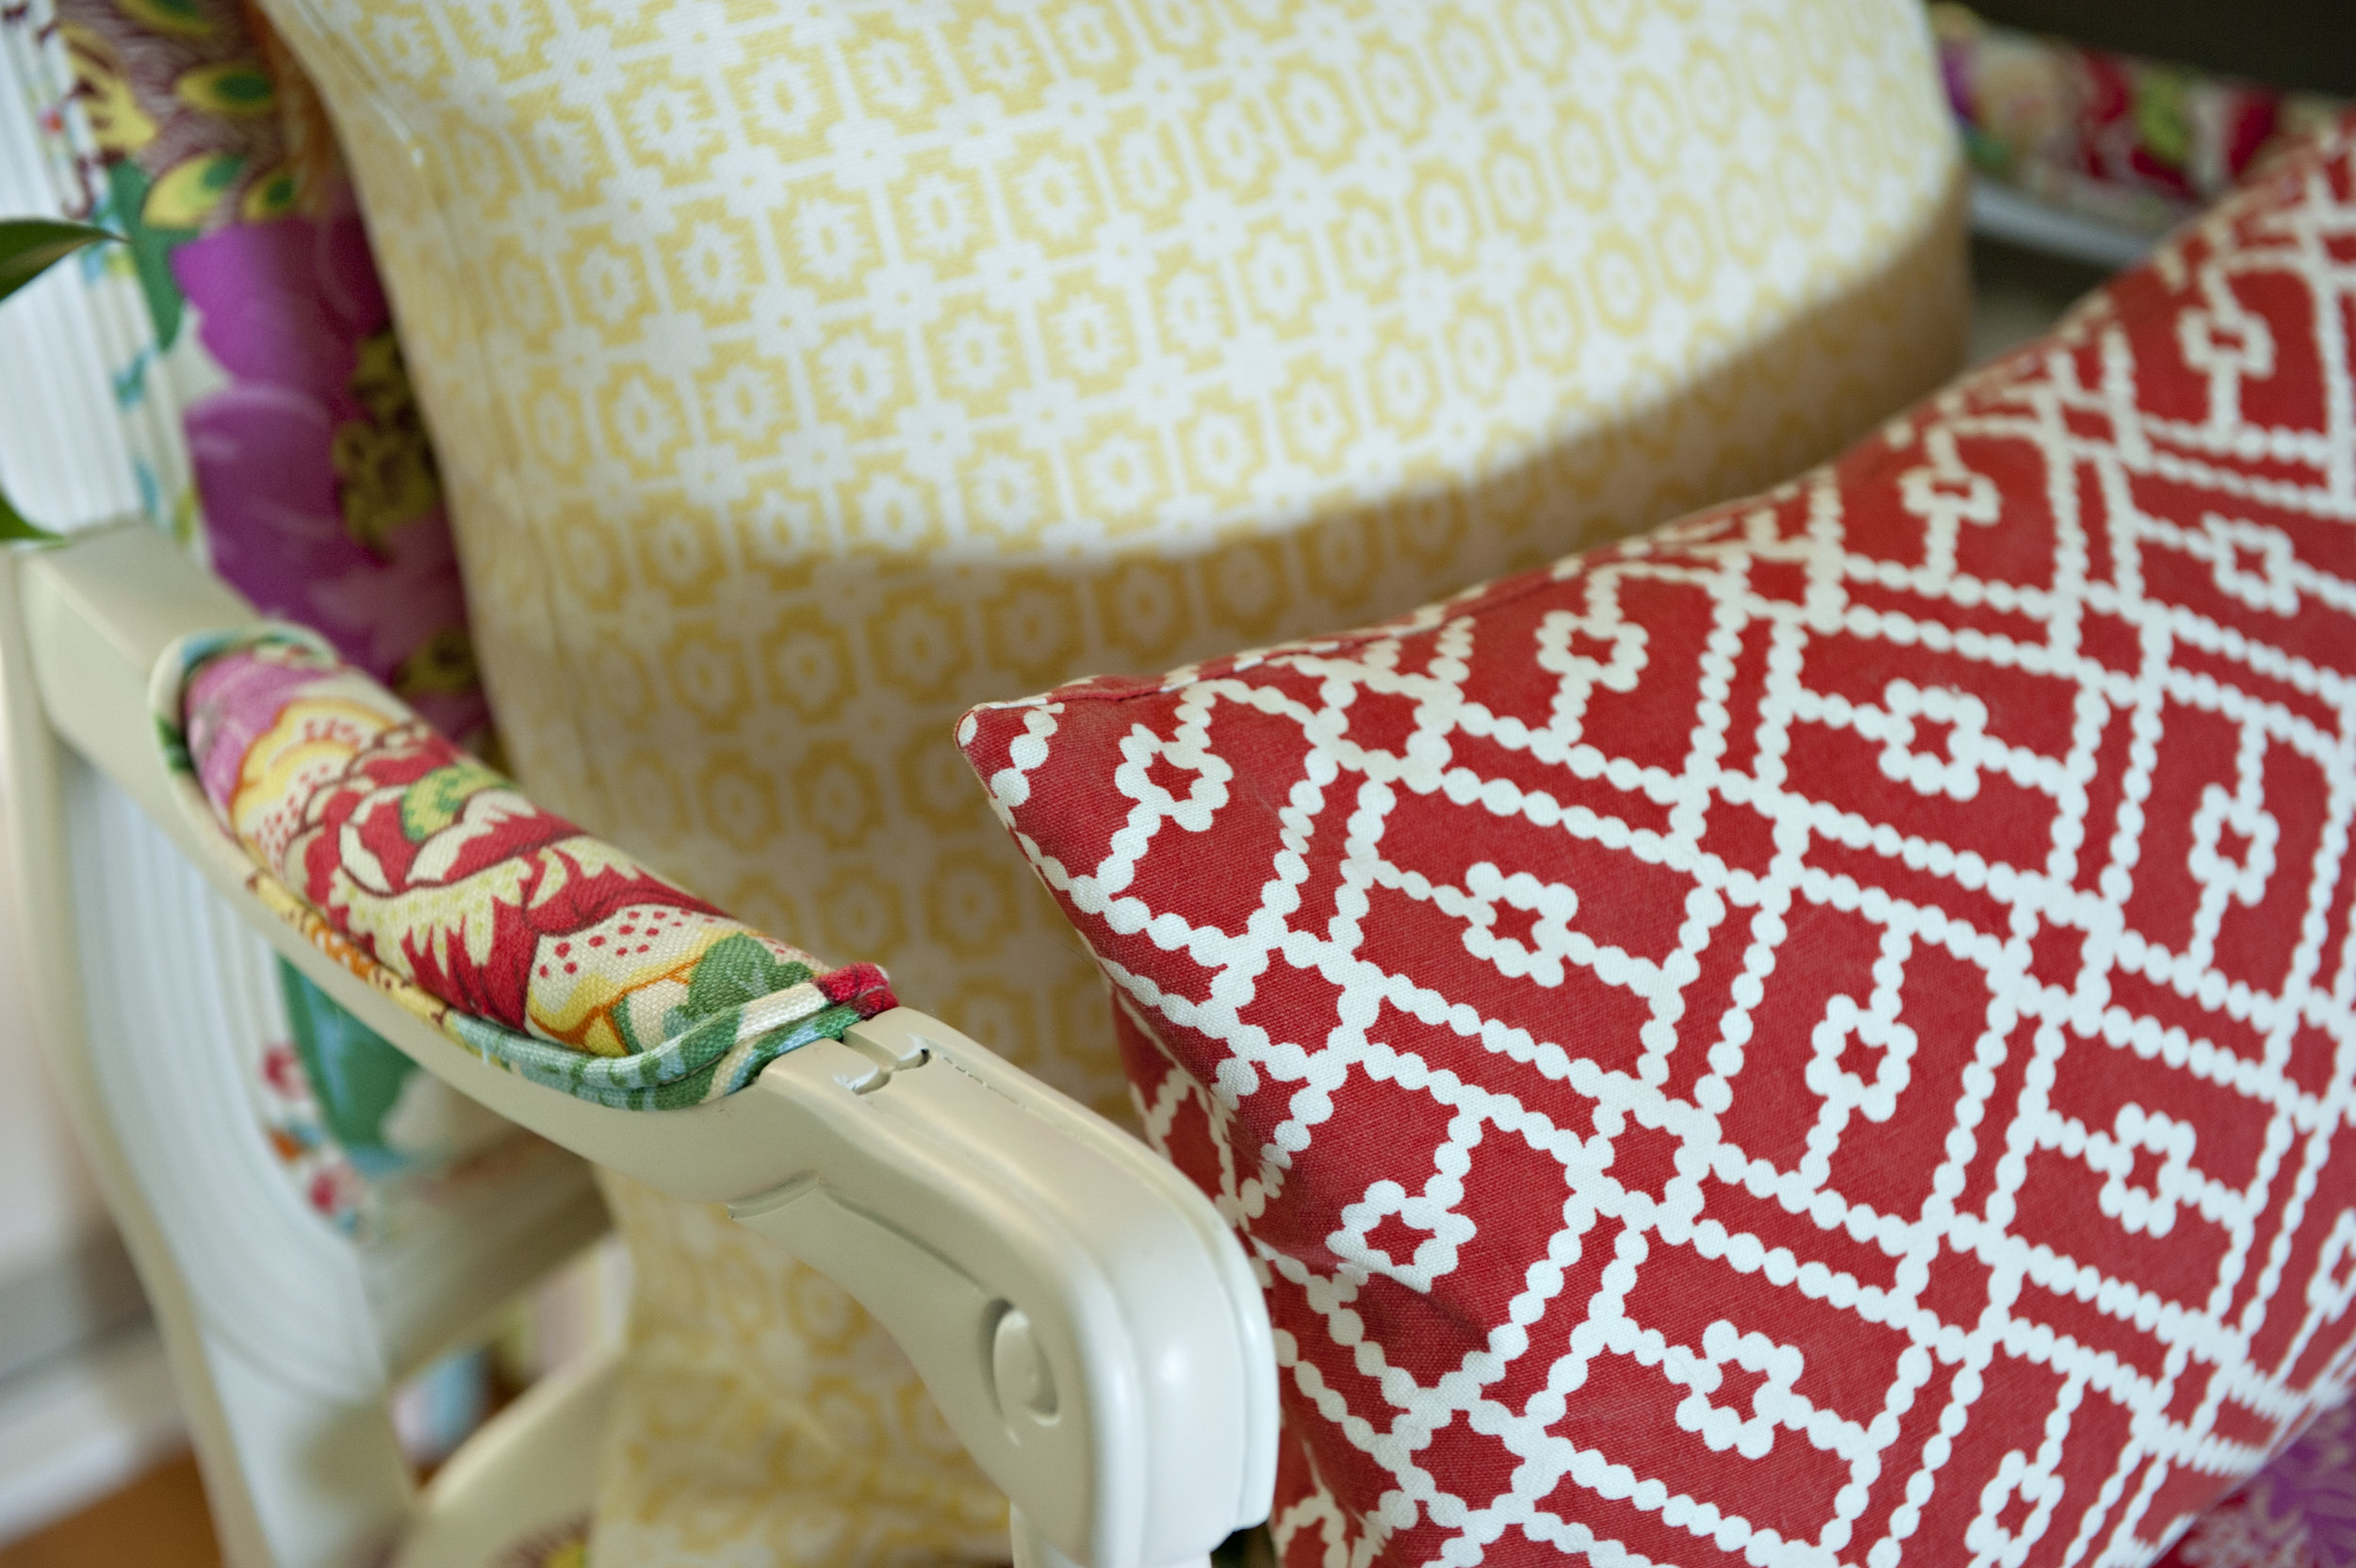 Candace-Plotz-Irving-Pillows-Yellow-Red-Bright